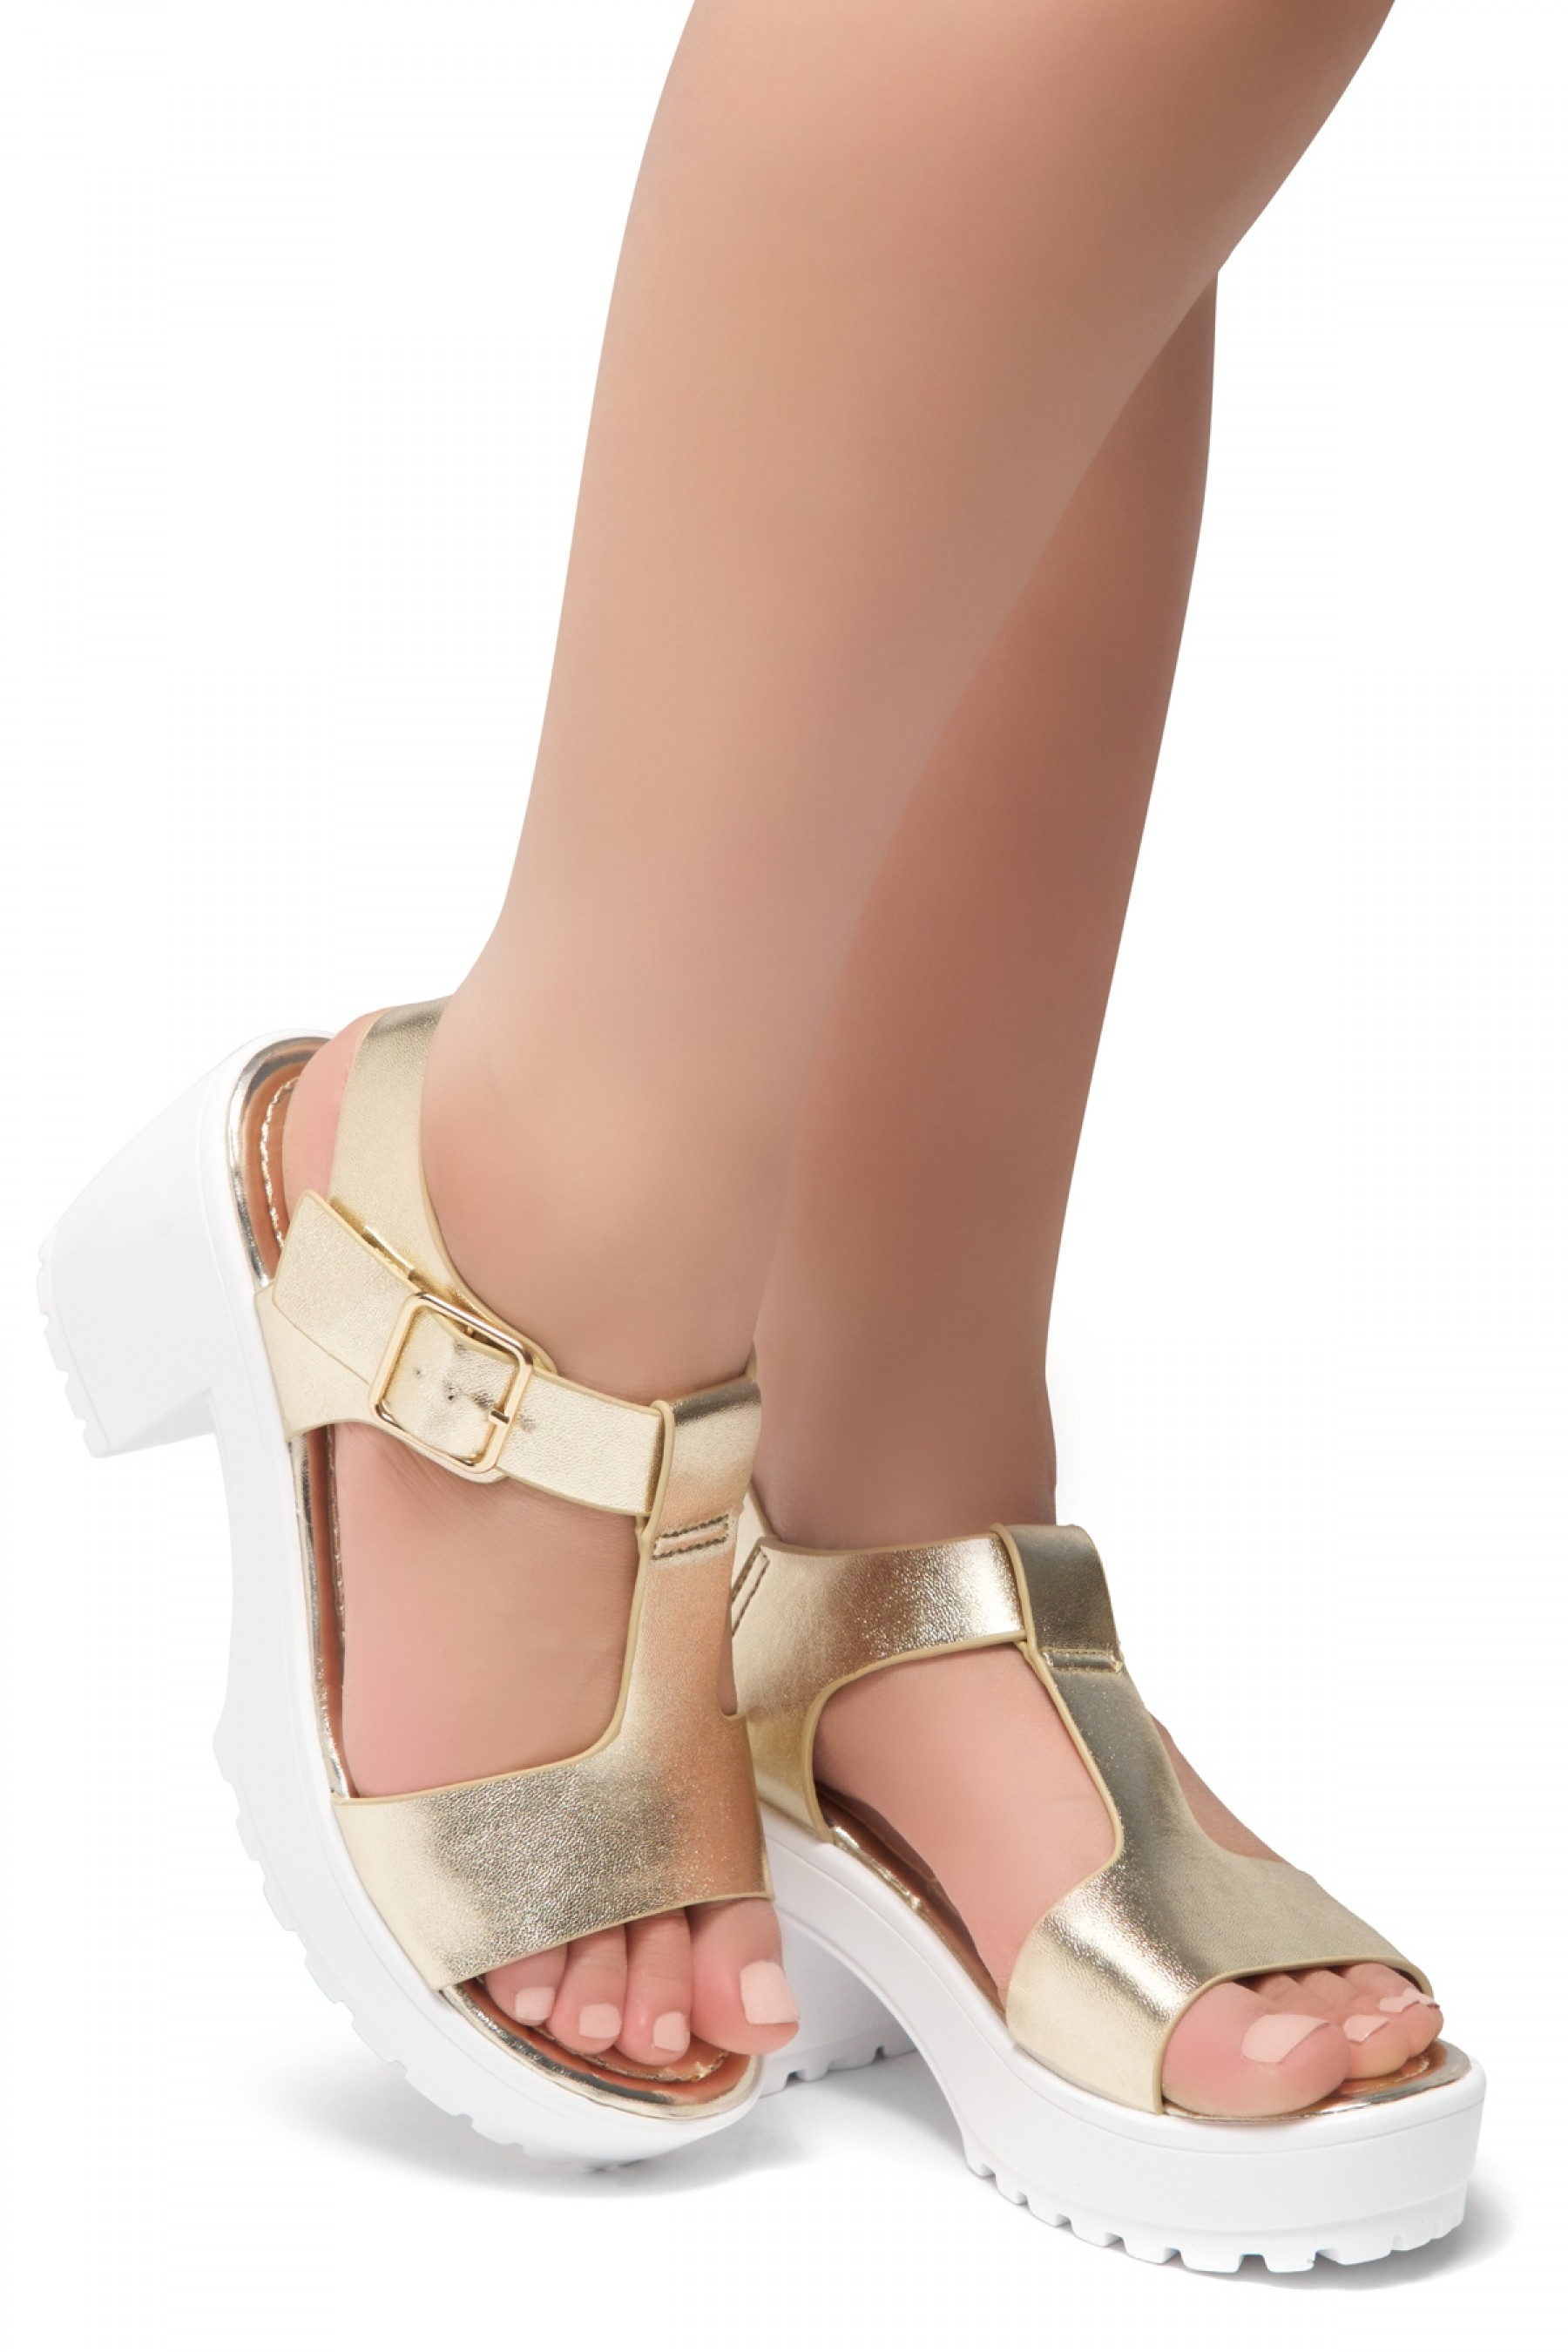 72df2655a4 Herstyle Certain-Women's Platform Sandal with Low Heel T-Strap ...